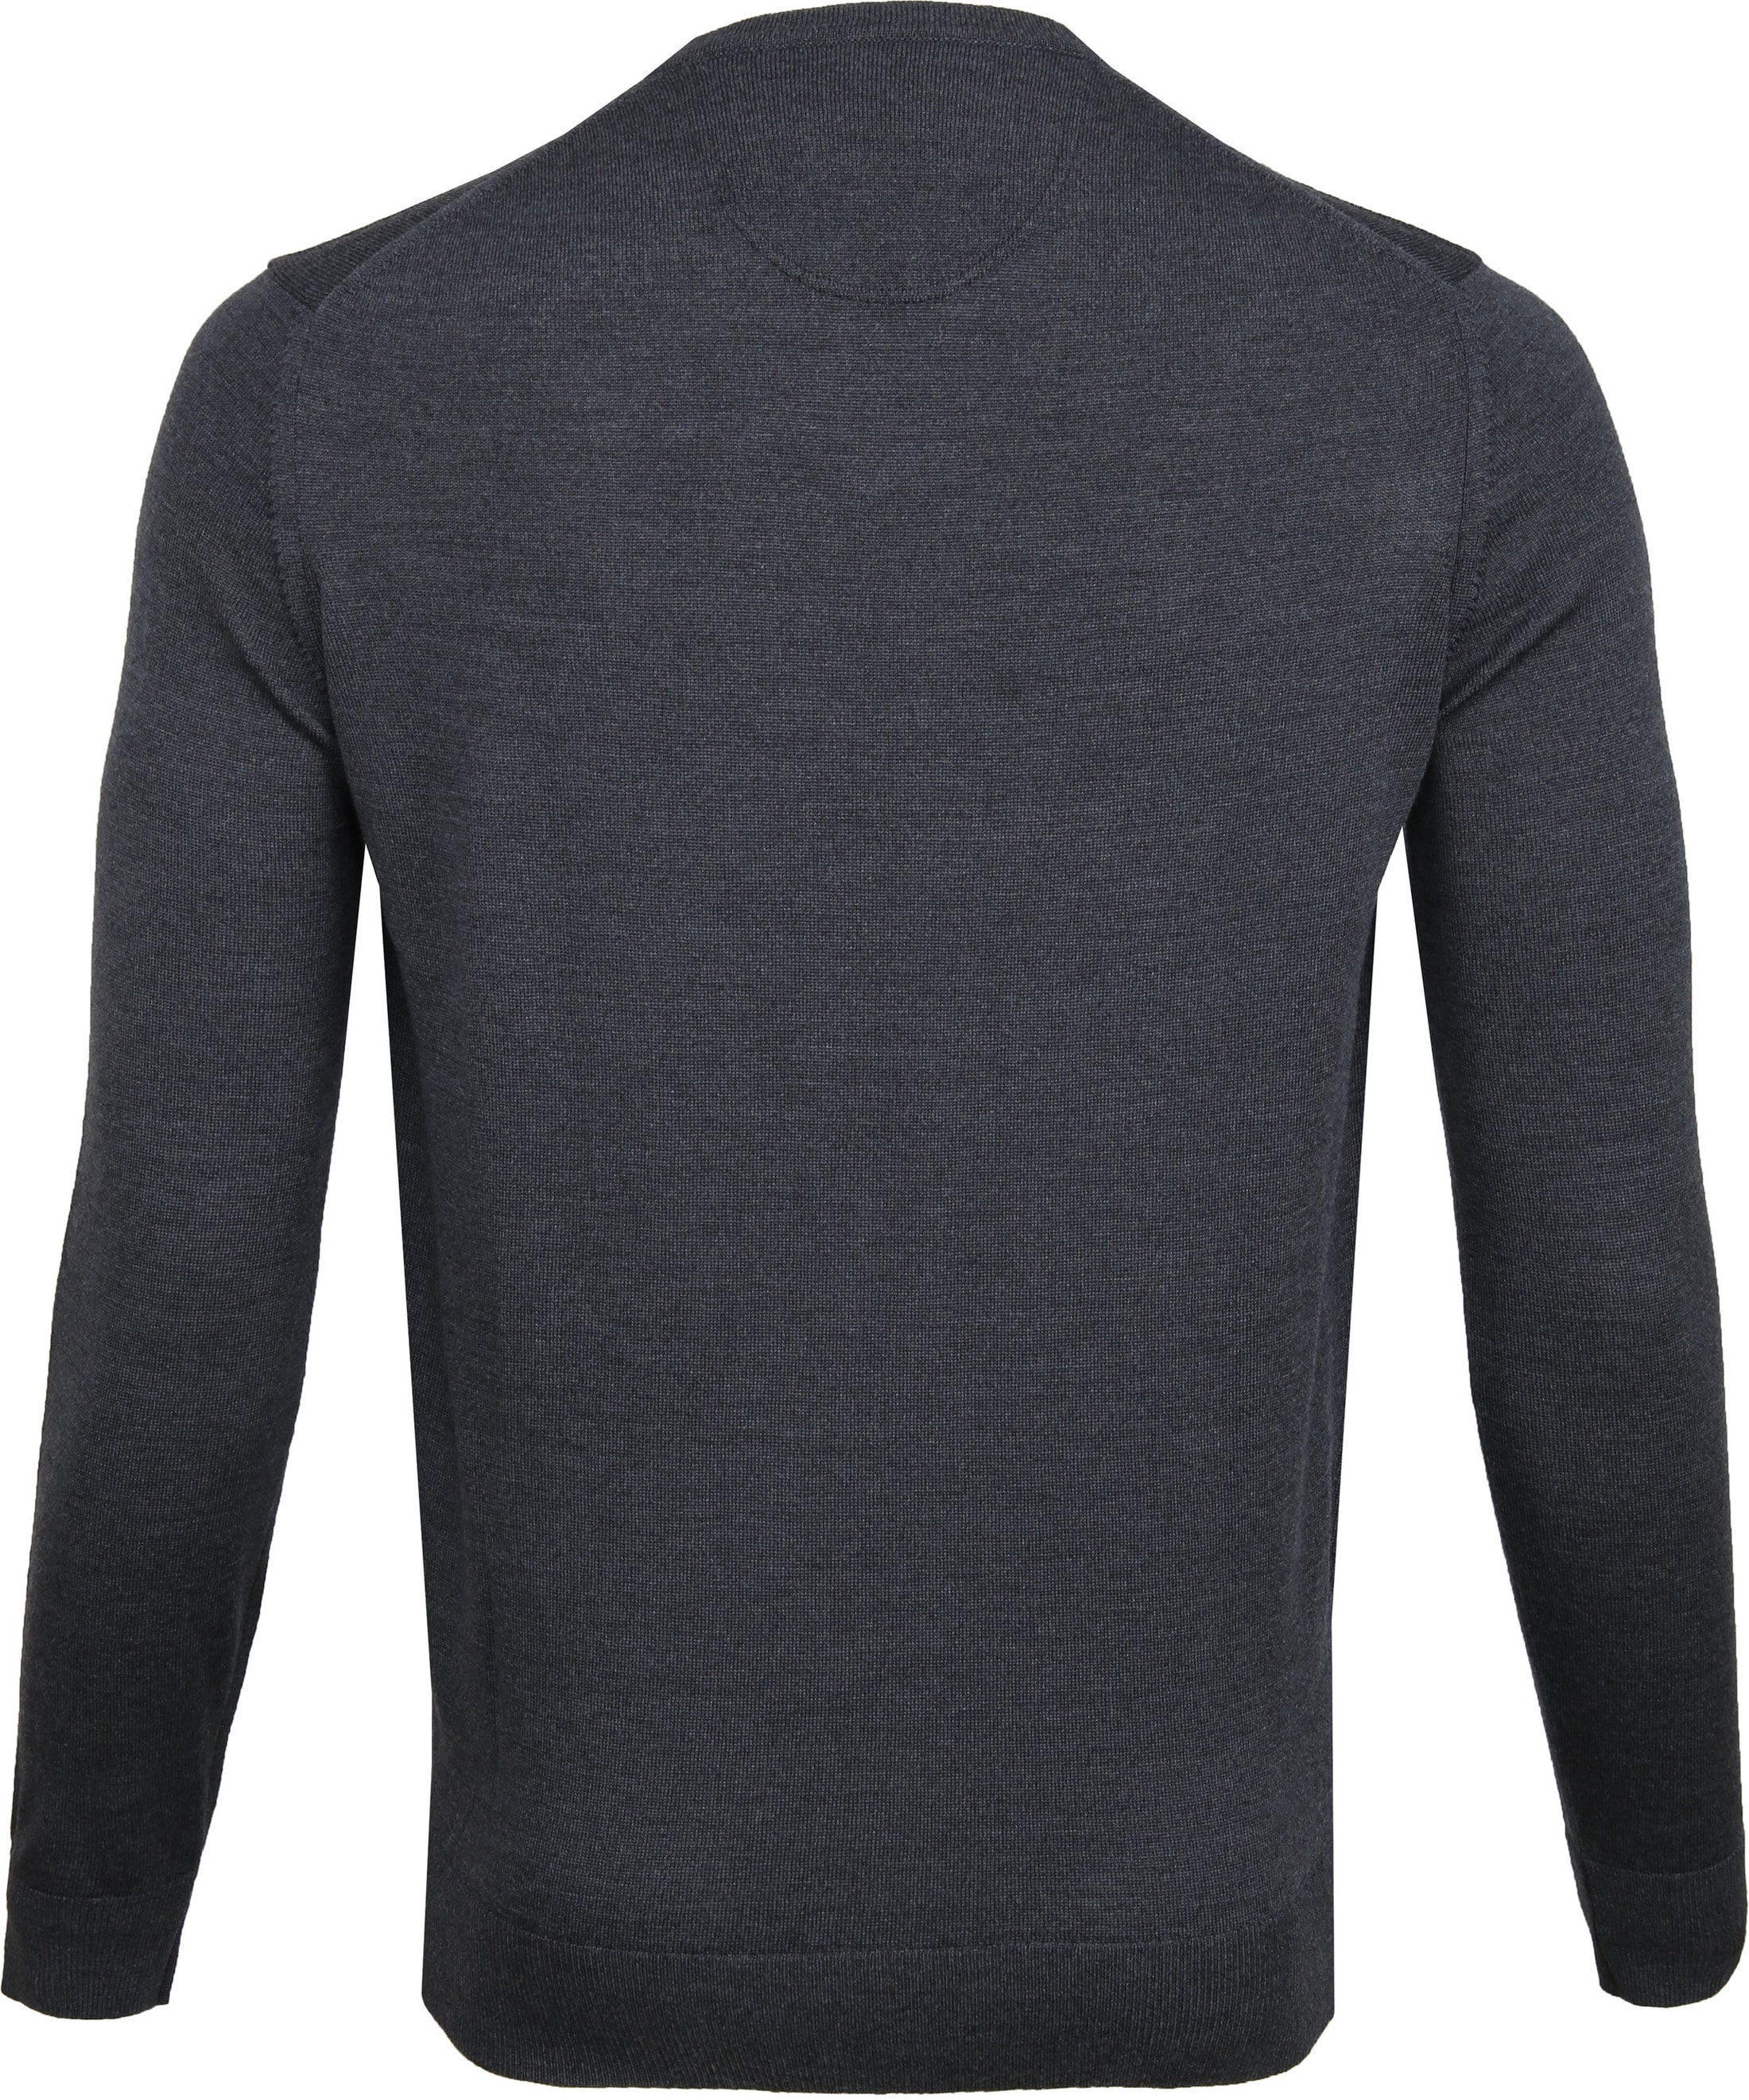 Suitable Merino Pullover Antraciet foto 3